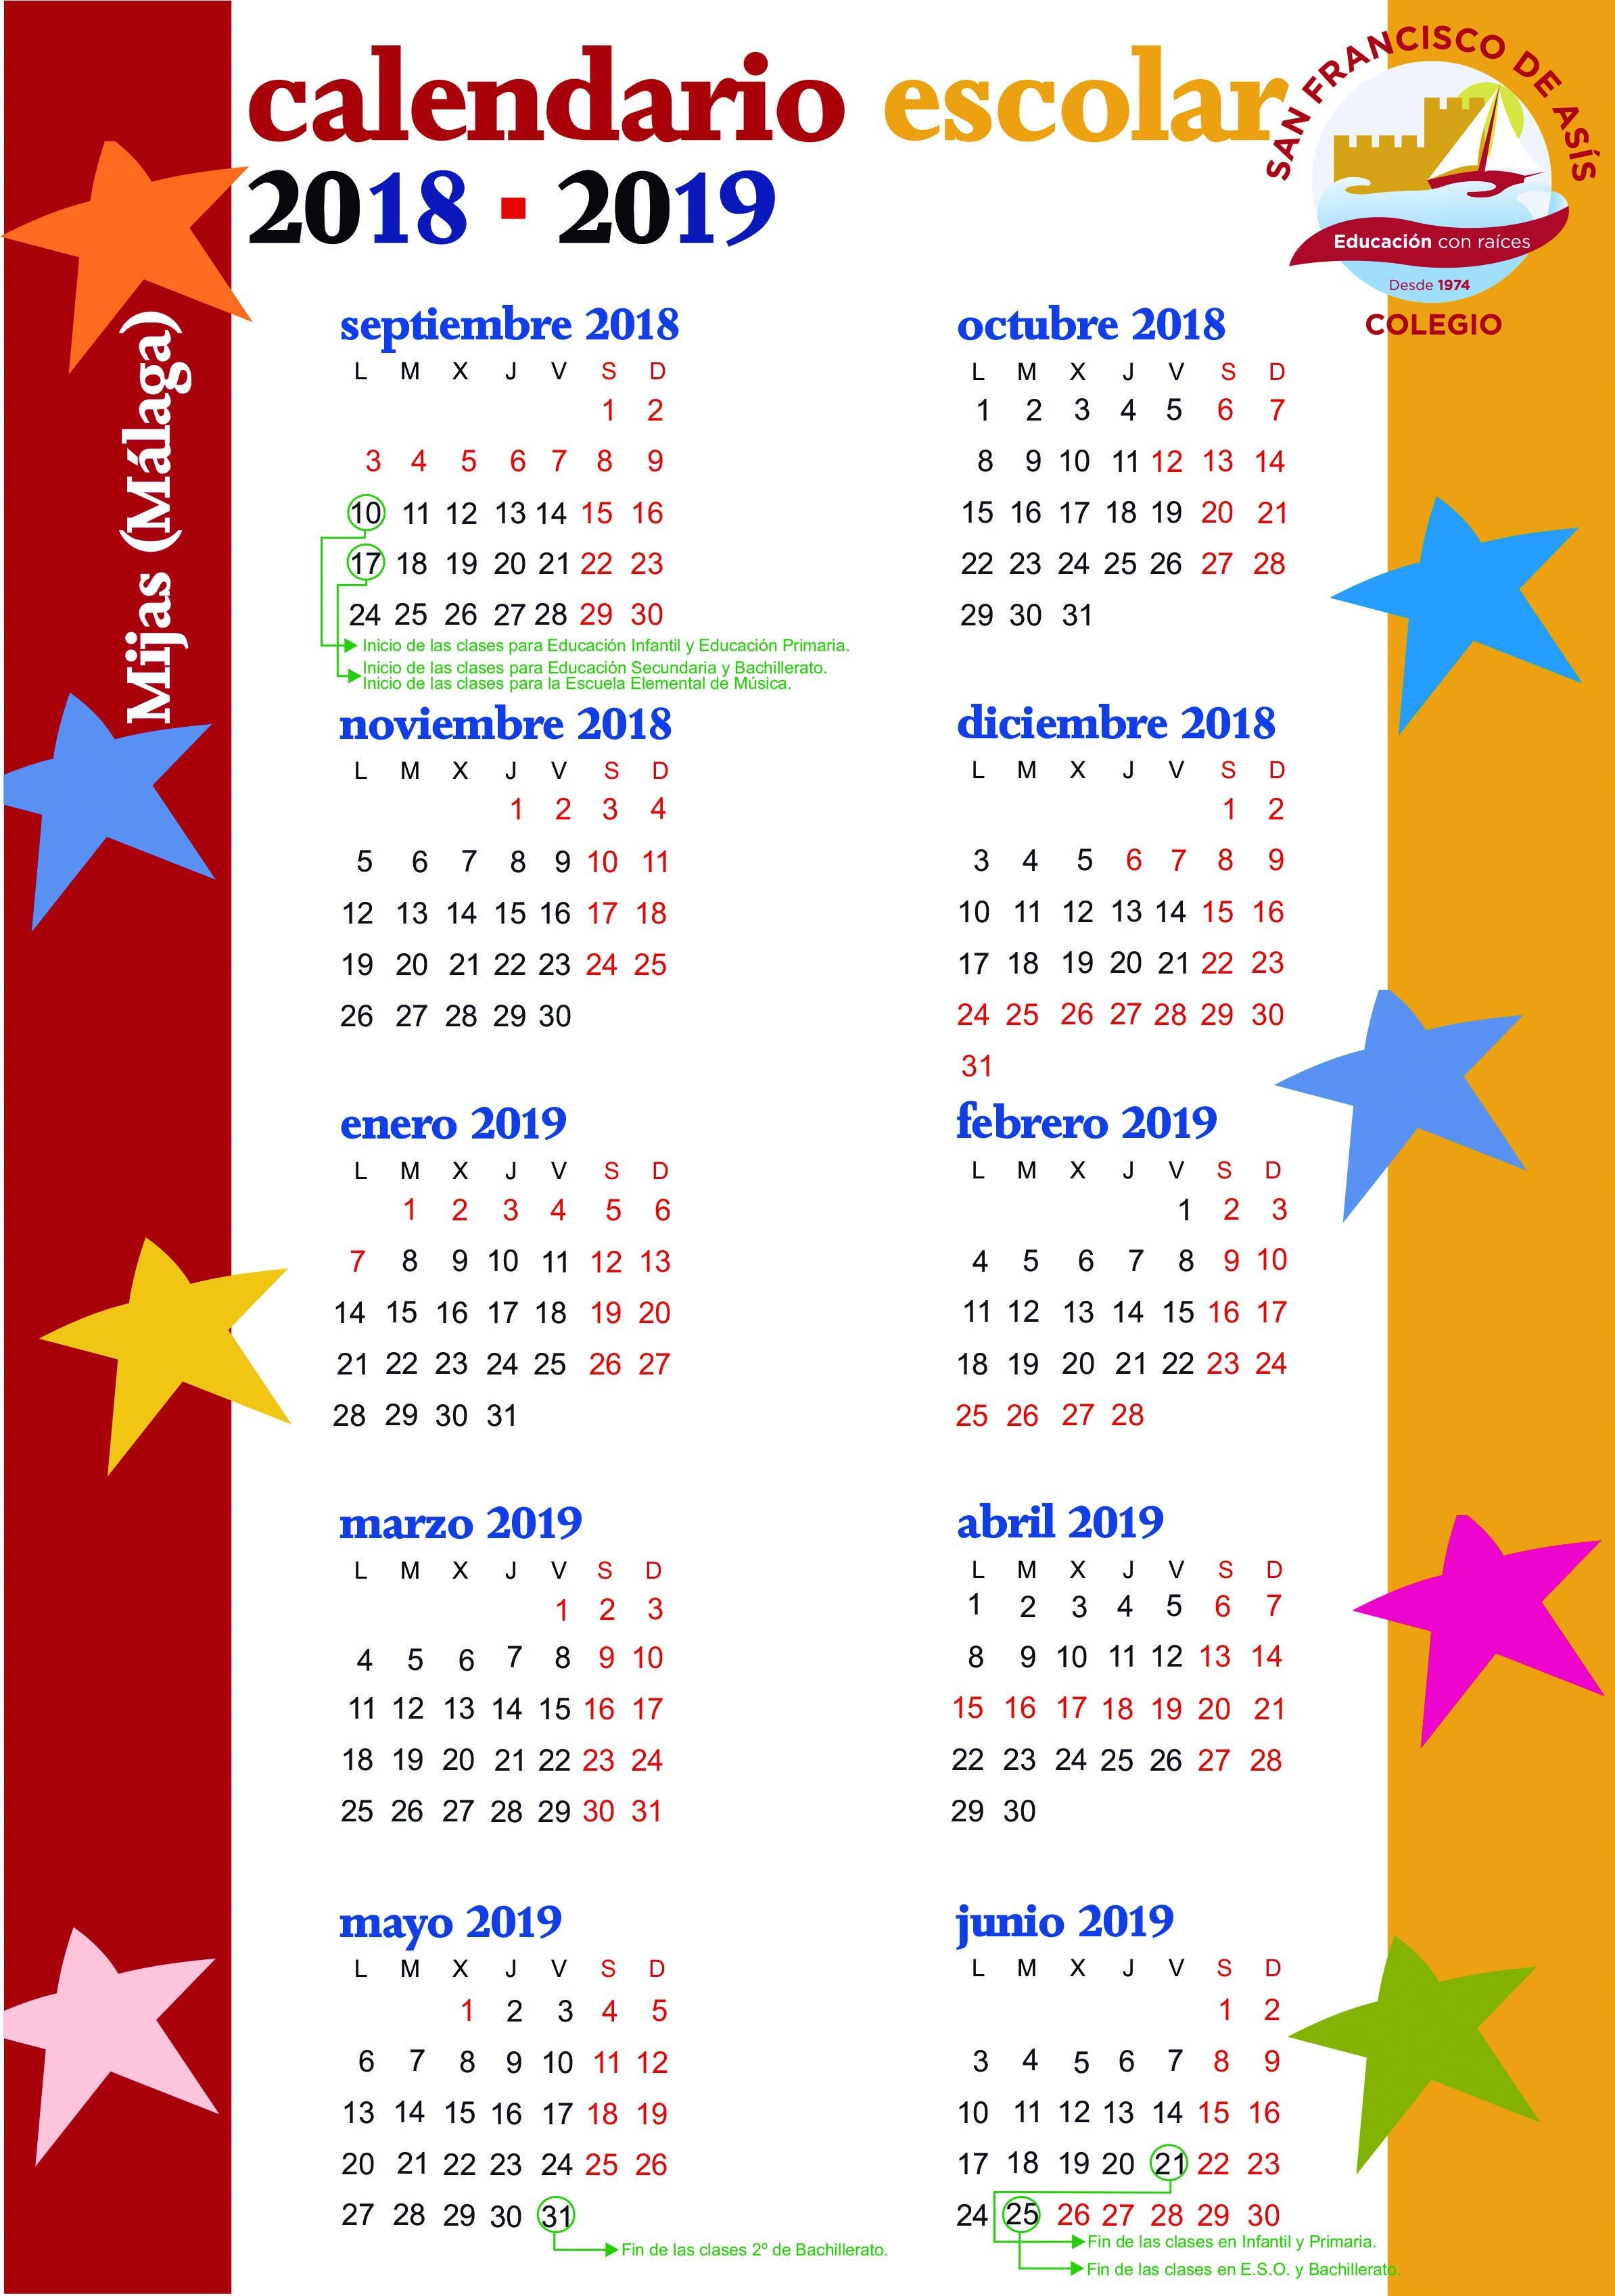 Calendario 2019 Escolar Argentina Mejores Y Más Novedosos Calendario Escolar Colegio San Francisco De as­s Of Calendario 2019 Escolar Argentina Más Caliente Calendario 2018 2019 – Baica